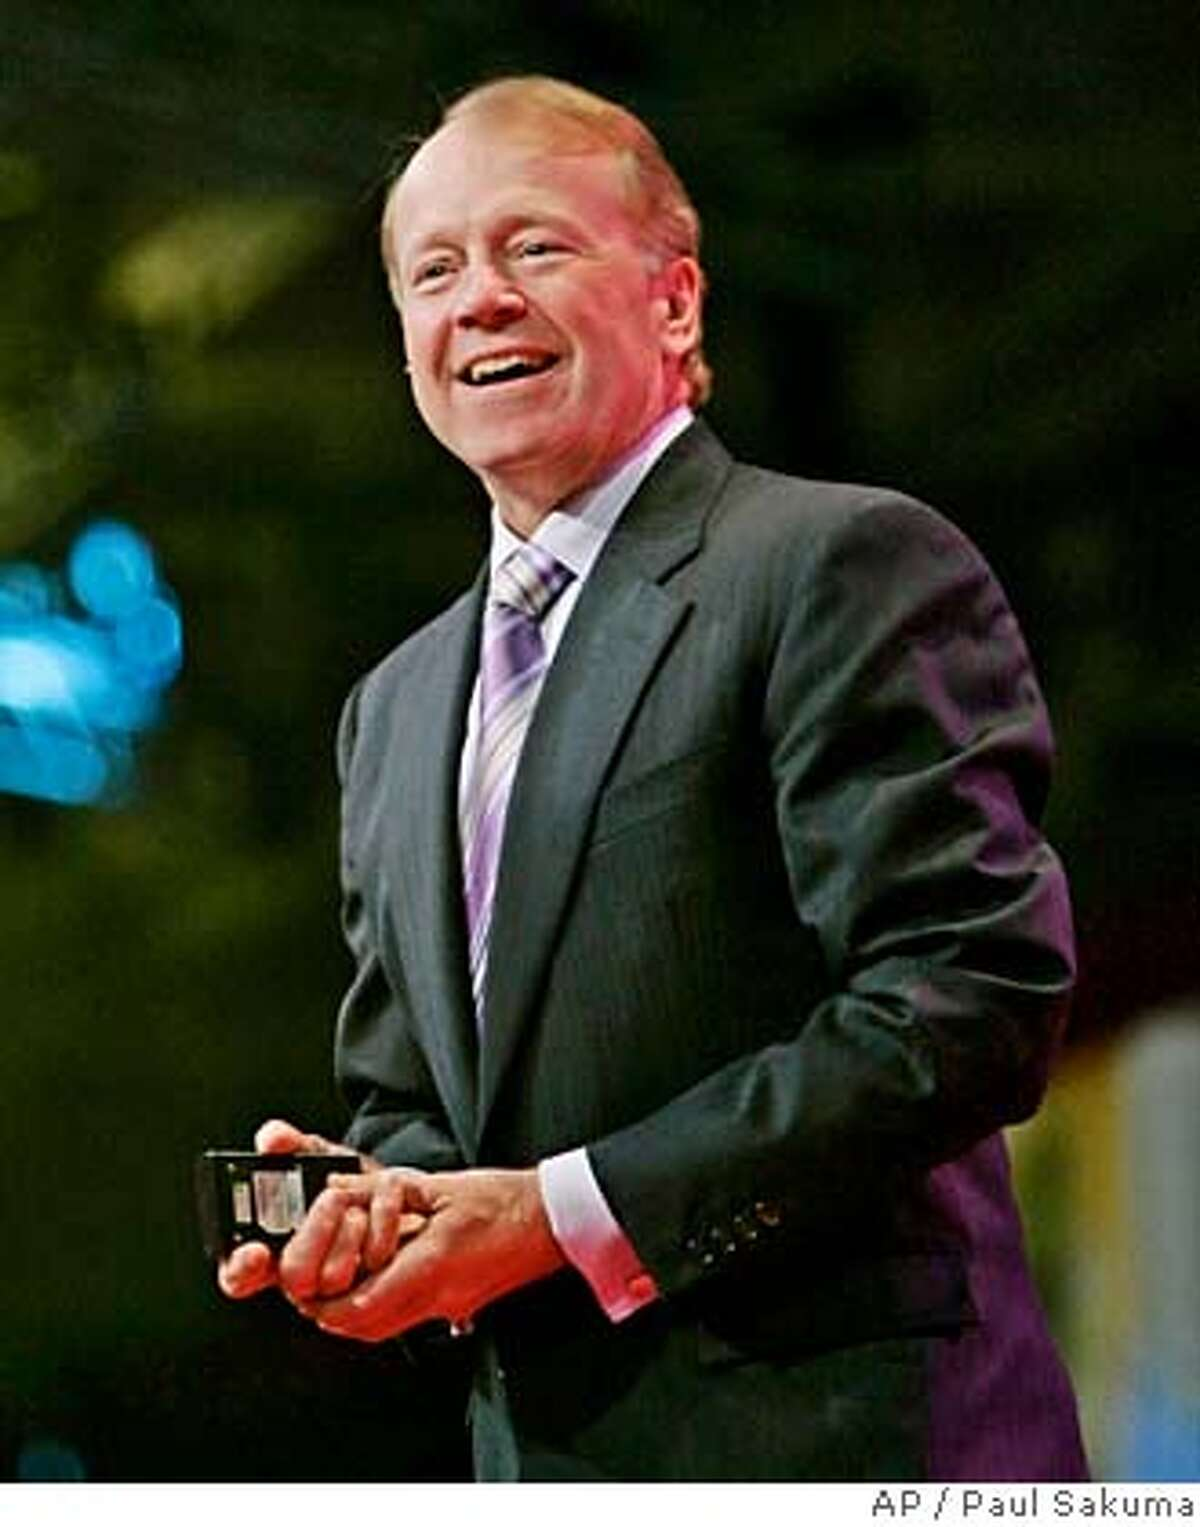 ** FILE ** Cisco Systems CEO John Chambers smiles during a keynote address at the Oracle Open World conference in San Francisco, in this Oct. 24, 2006, file photo. Chambers received compensation the company valued at $12.8 million in fiscal 2007, though his total pay package was actually much higher as he cashed out $50.9 million in stock options while the networking gear maker continues to profit mightily from a boom in demand for Internet bandwidth. (AP Photo/Paul Sakuma, file) OCT. 24, 2006 FILE PHOTO